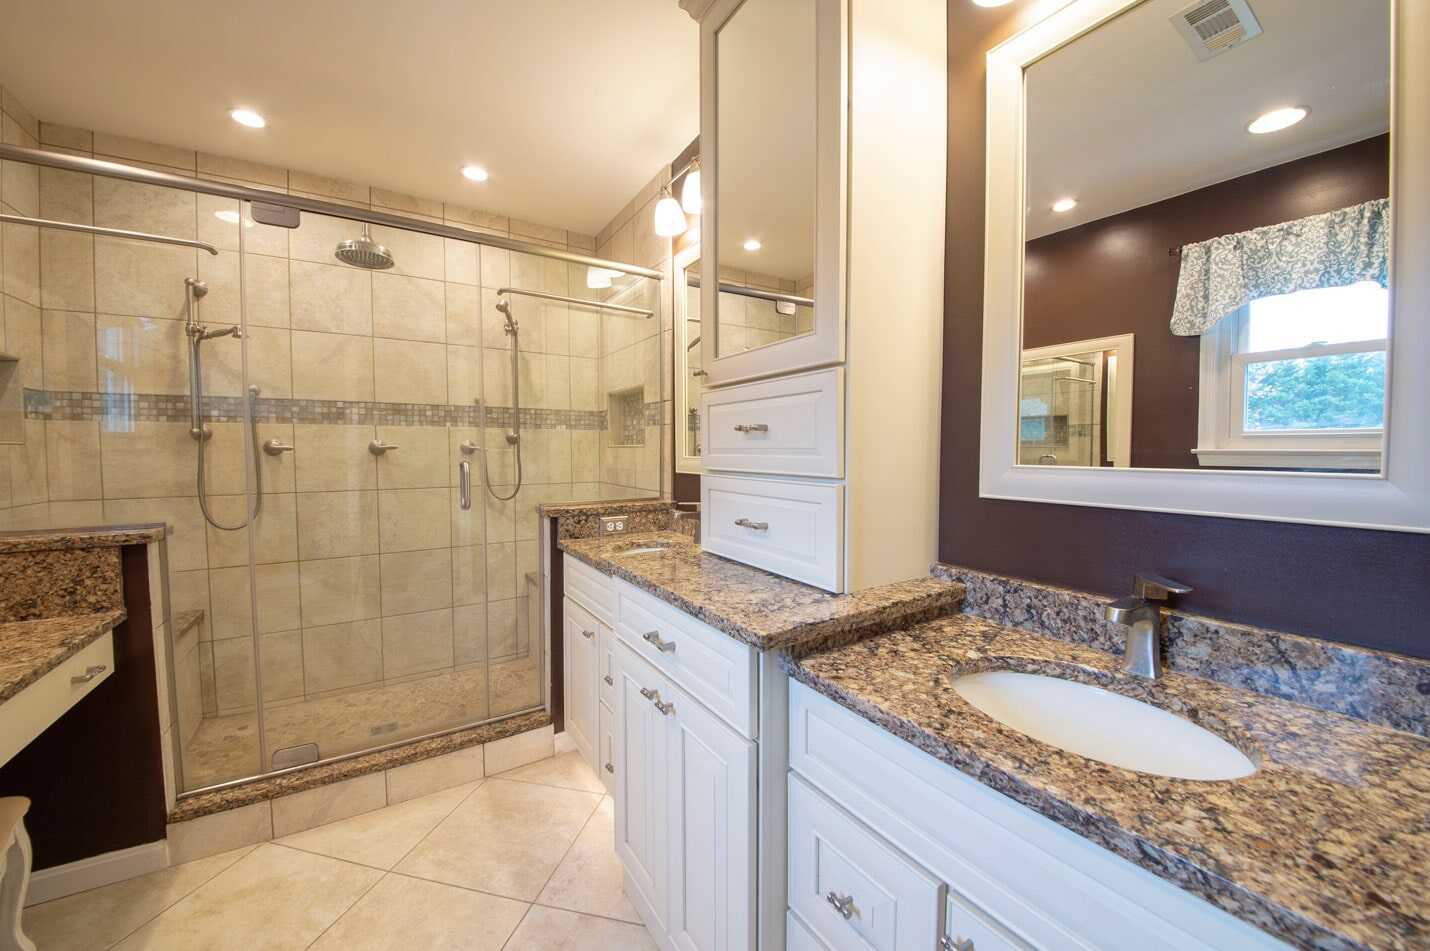 Bathroom remodeling in Port Republic, MD by Southern Maryland Kitchen, Bath, Floors & Design